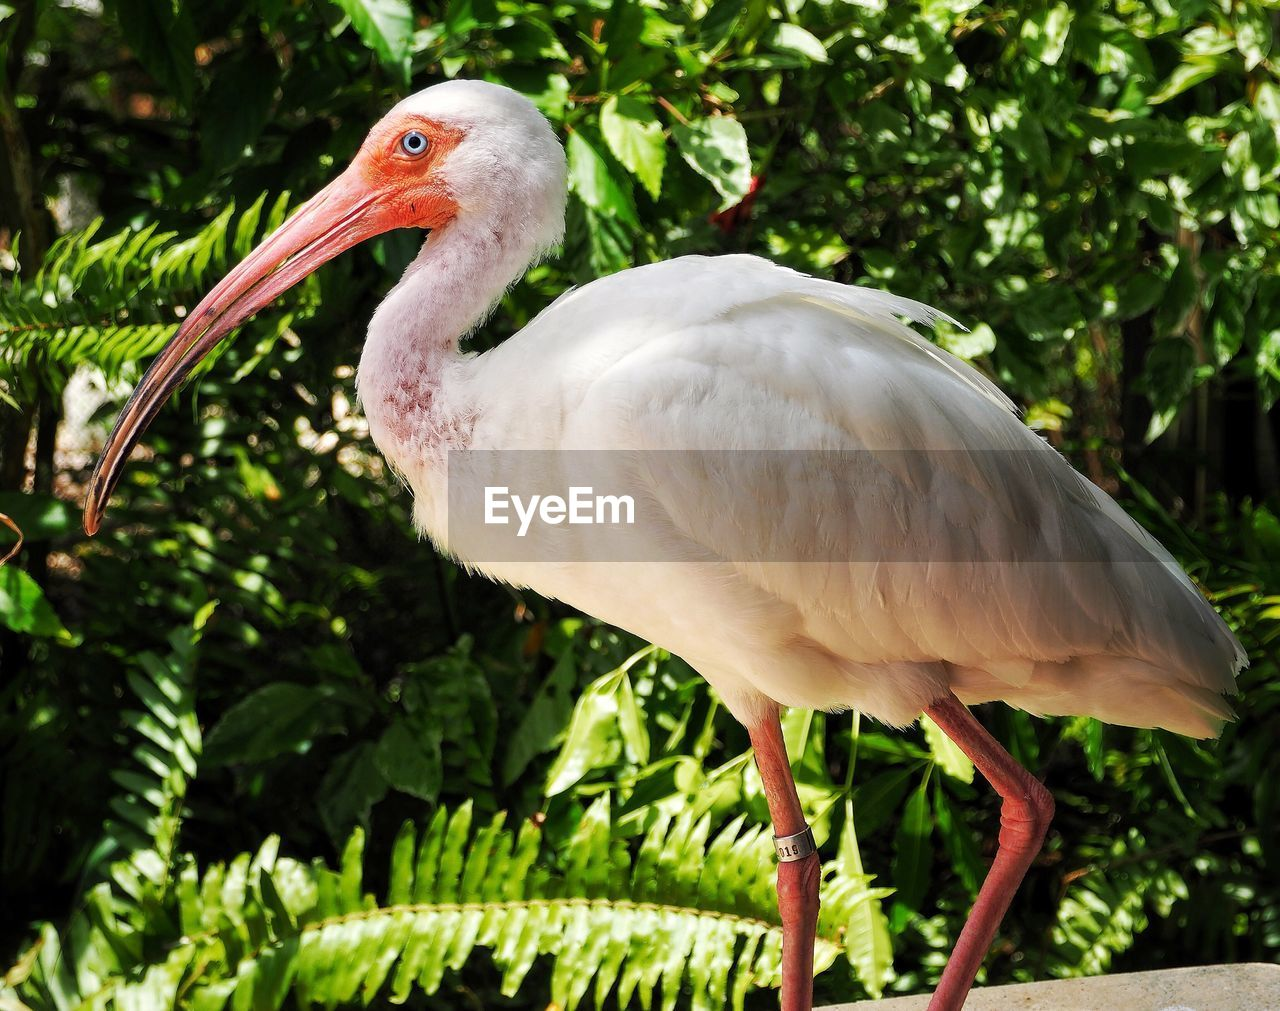 bird, animal themes, animal, vertebrate, animal wildlife, animals in the wild, one animal, focus on foreground, beak, plant, no people, nature, tree, day, perching, close-up, white color, outdoors, ibis, beauty in nature, stork, animal neck